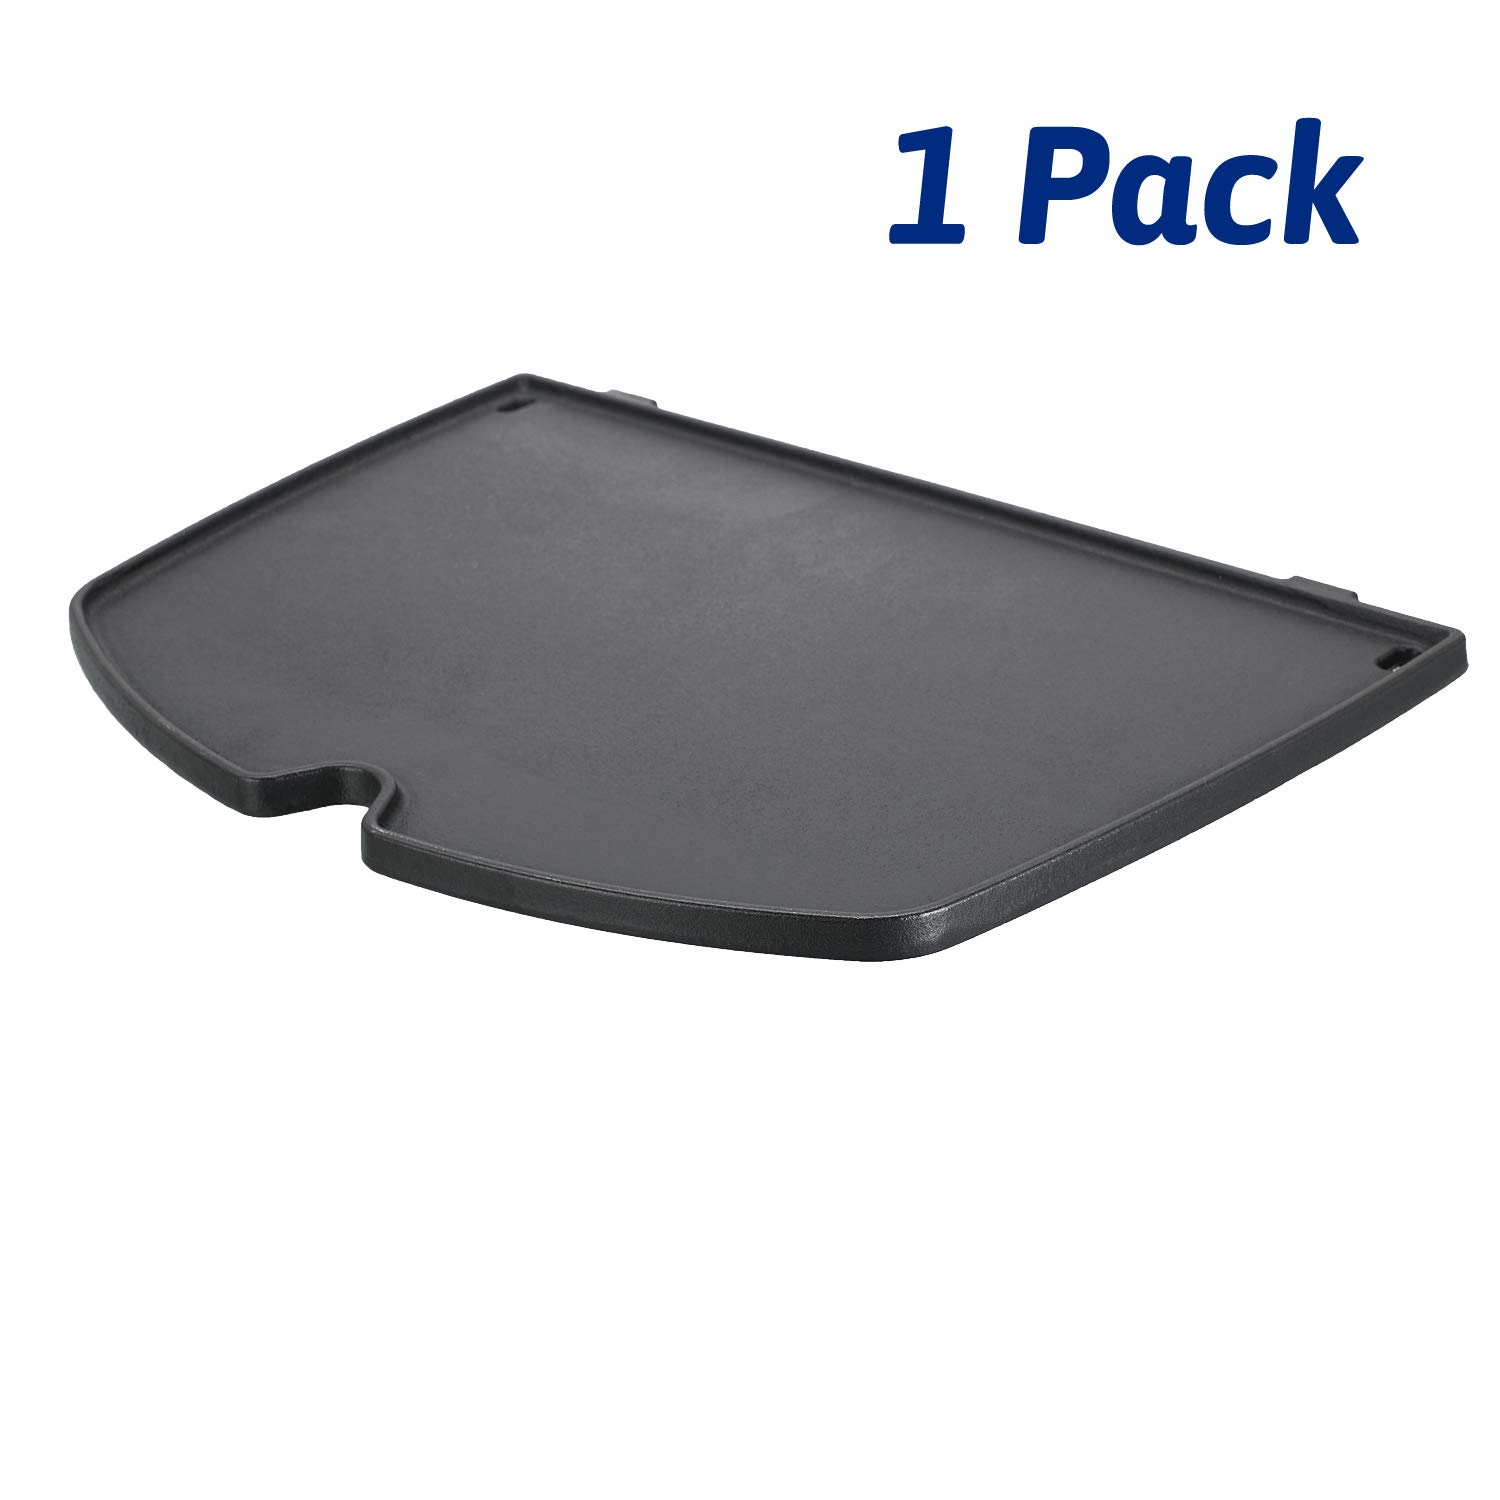 Utheer 6559 Grill Parts Cooking Griddle Cast 15.3 x 10.8 Inch for Weber Q2000 Q2200 Series Gas Grills, Matte Cast Iron by Utheer